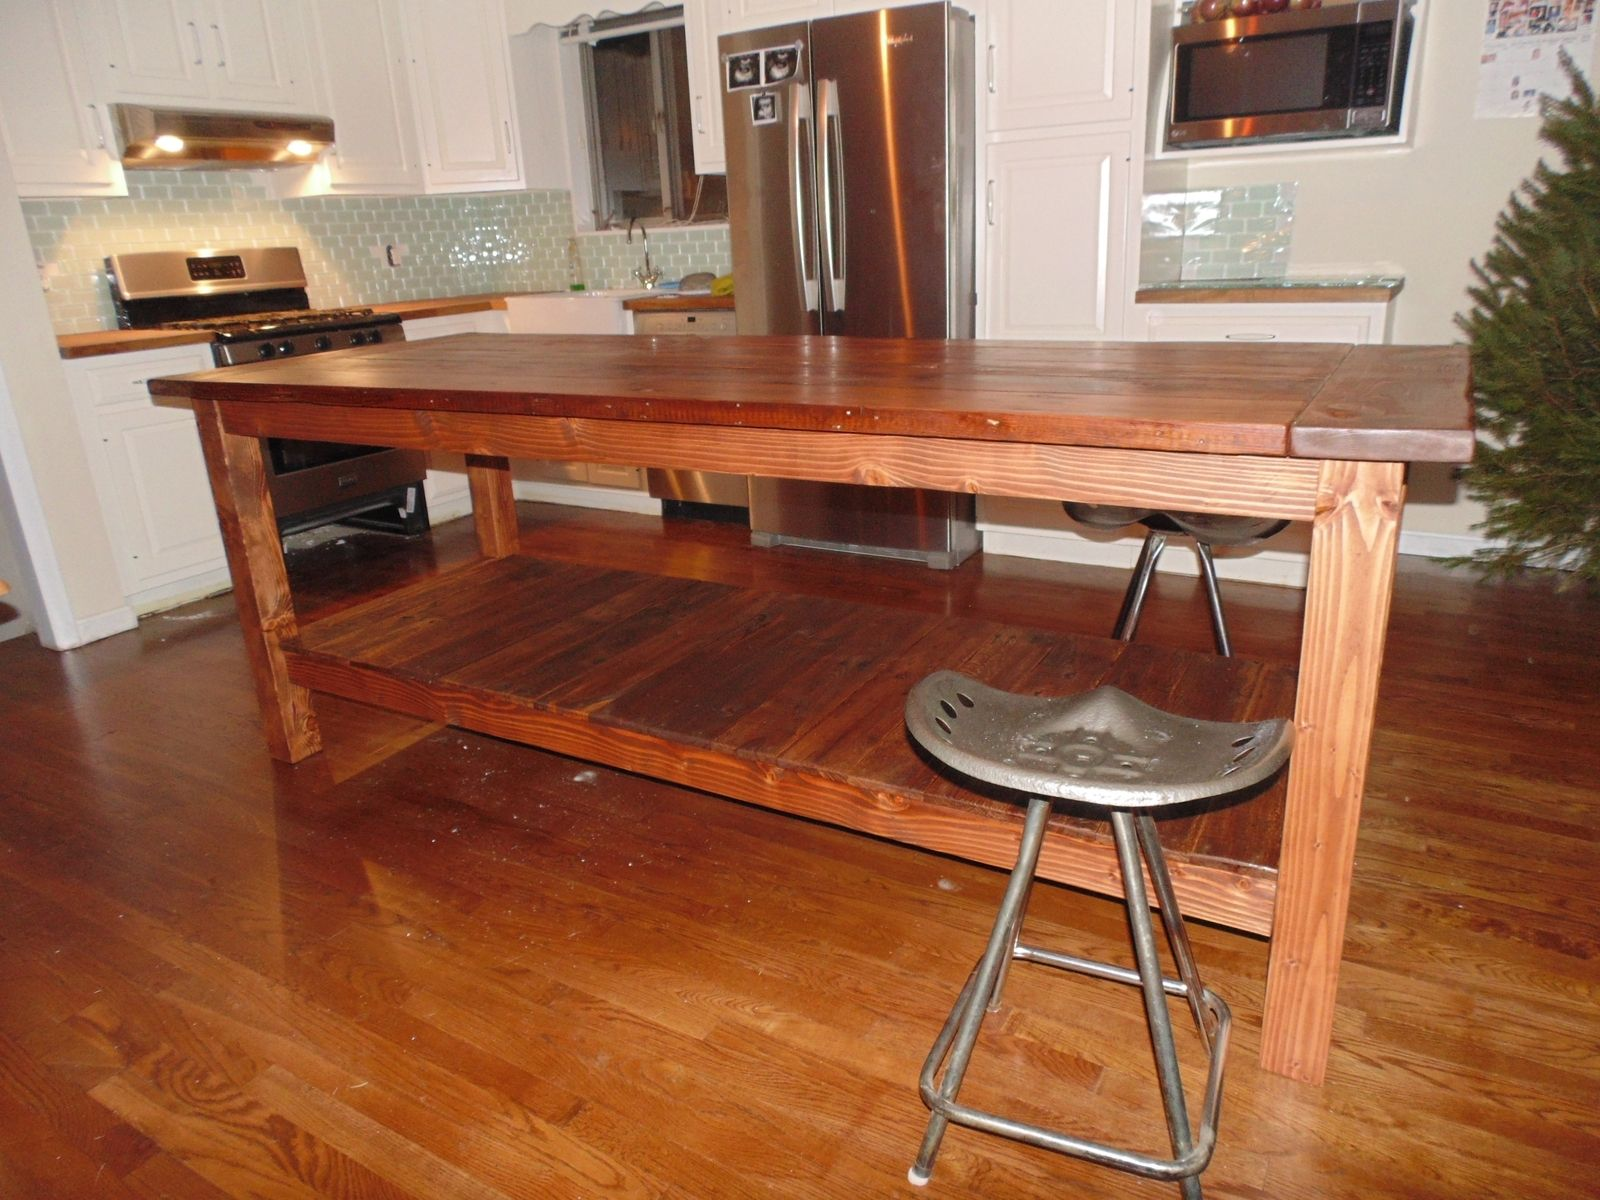 Bunnings Bar Stools Hand Crafted Reclaimed Wood Farmhouse Kitchen Island By